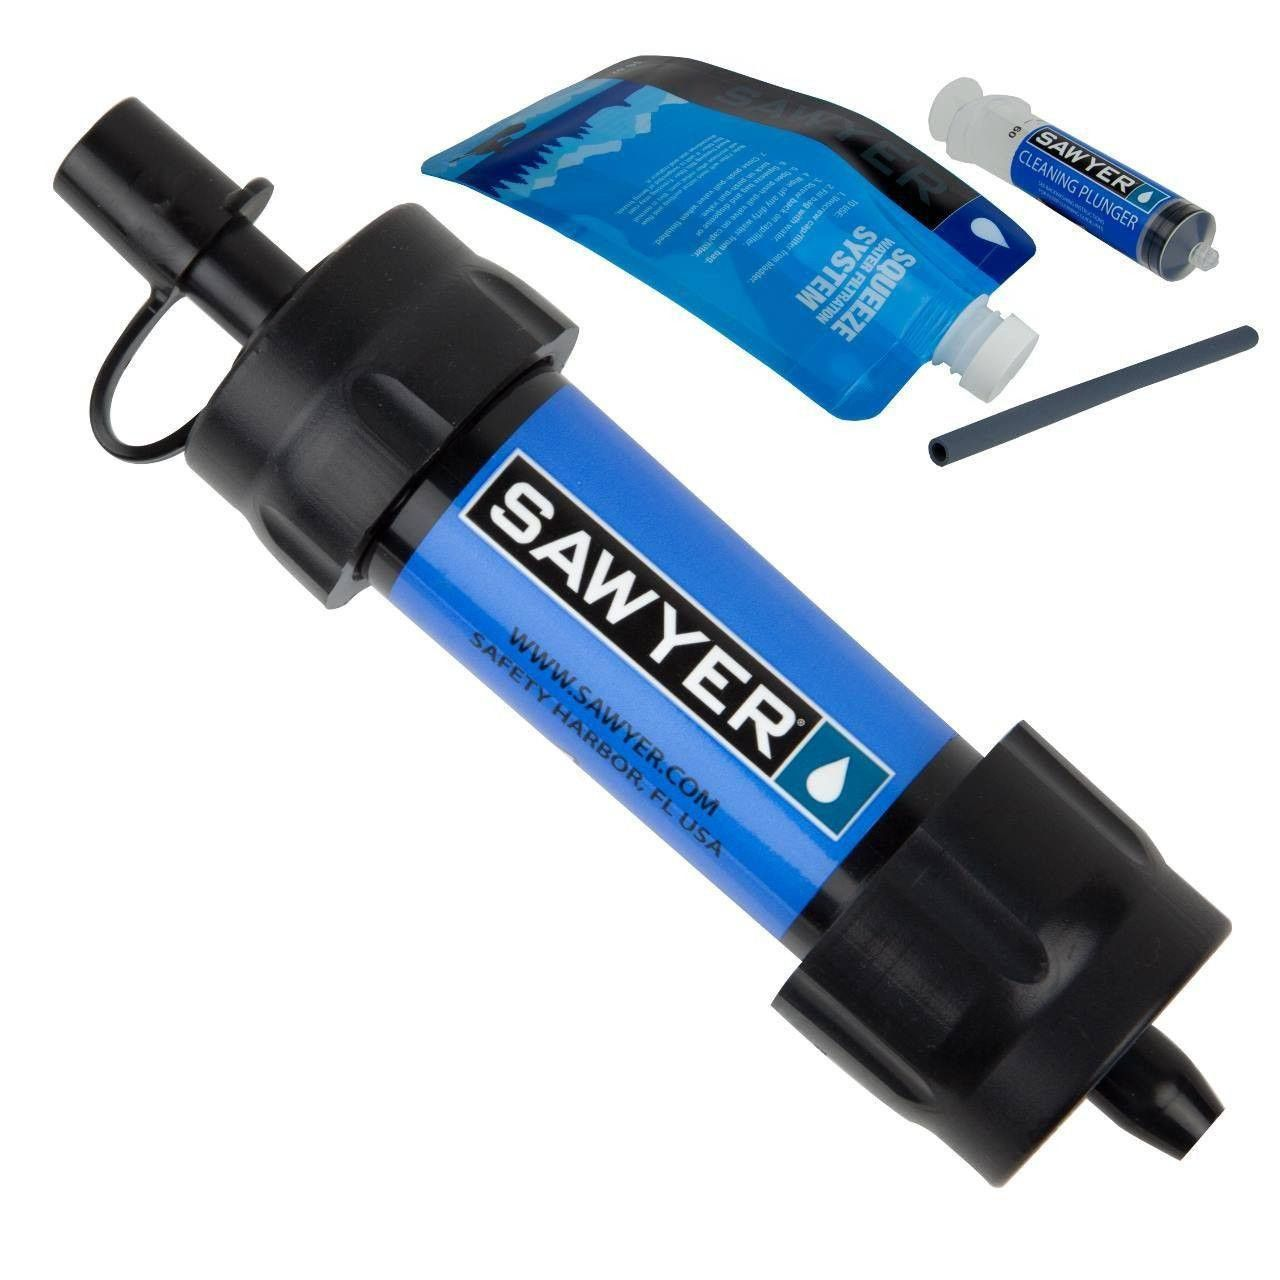 Sawyer Products Mini Water Filter Camping Water Filter Water Filtration Water Filtration System